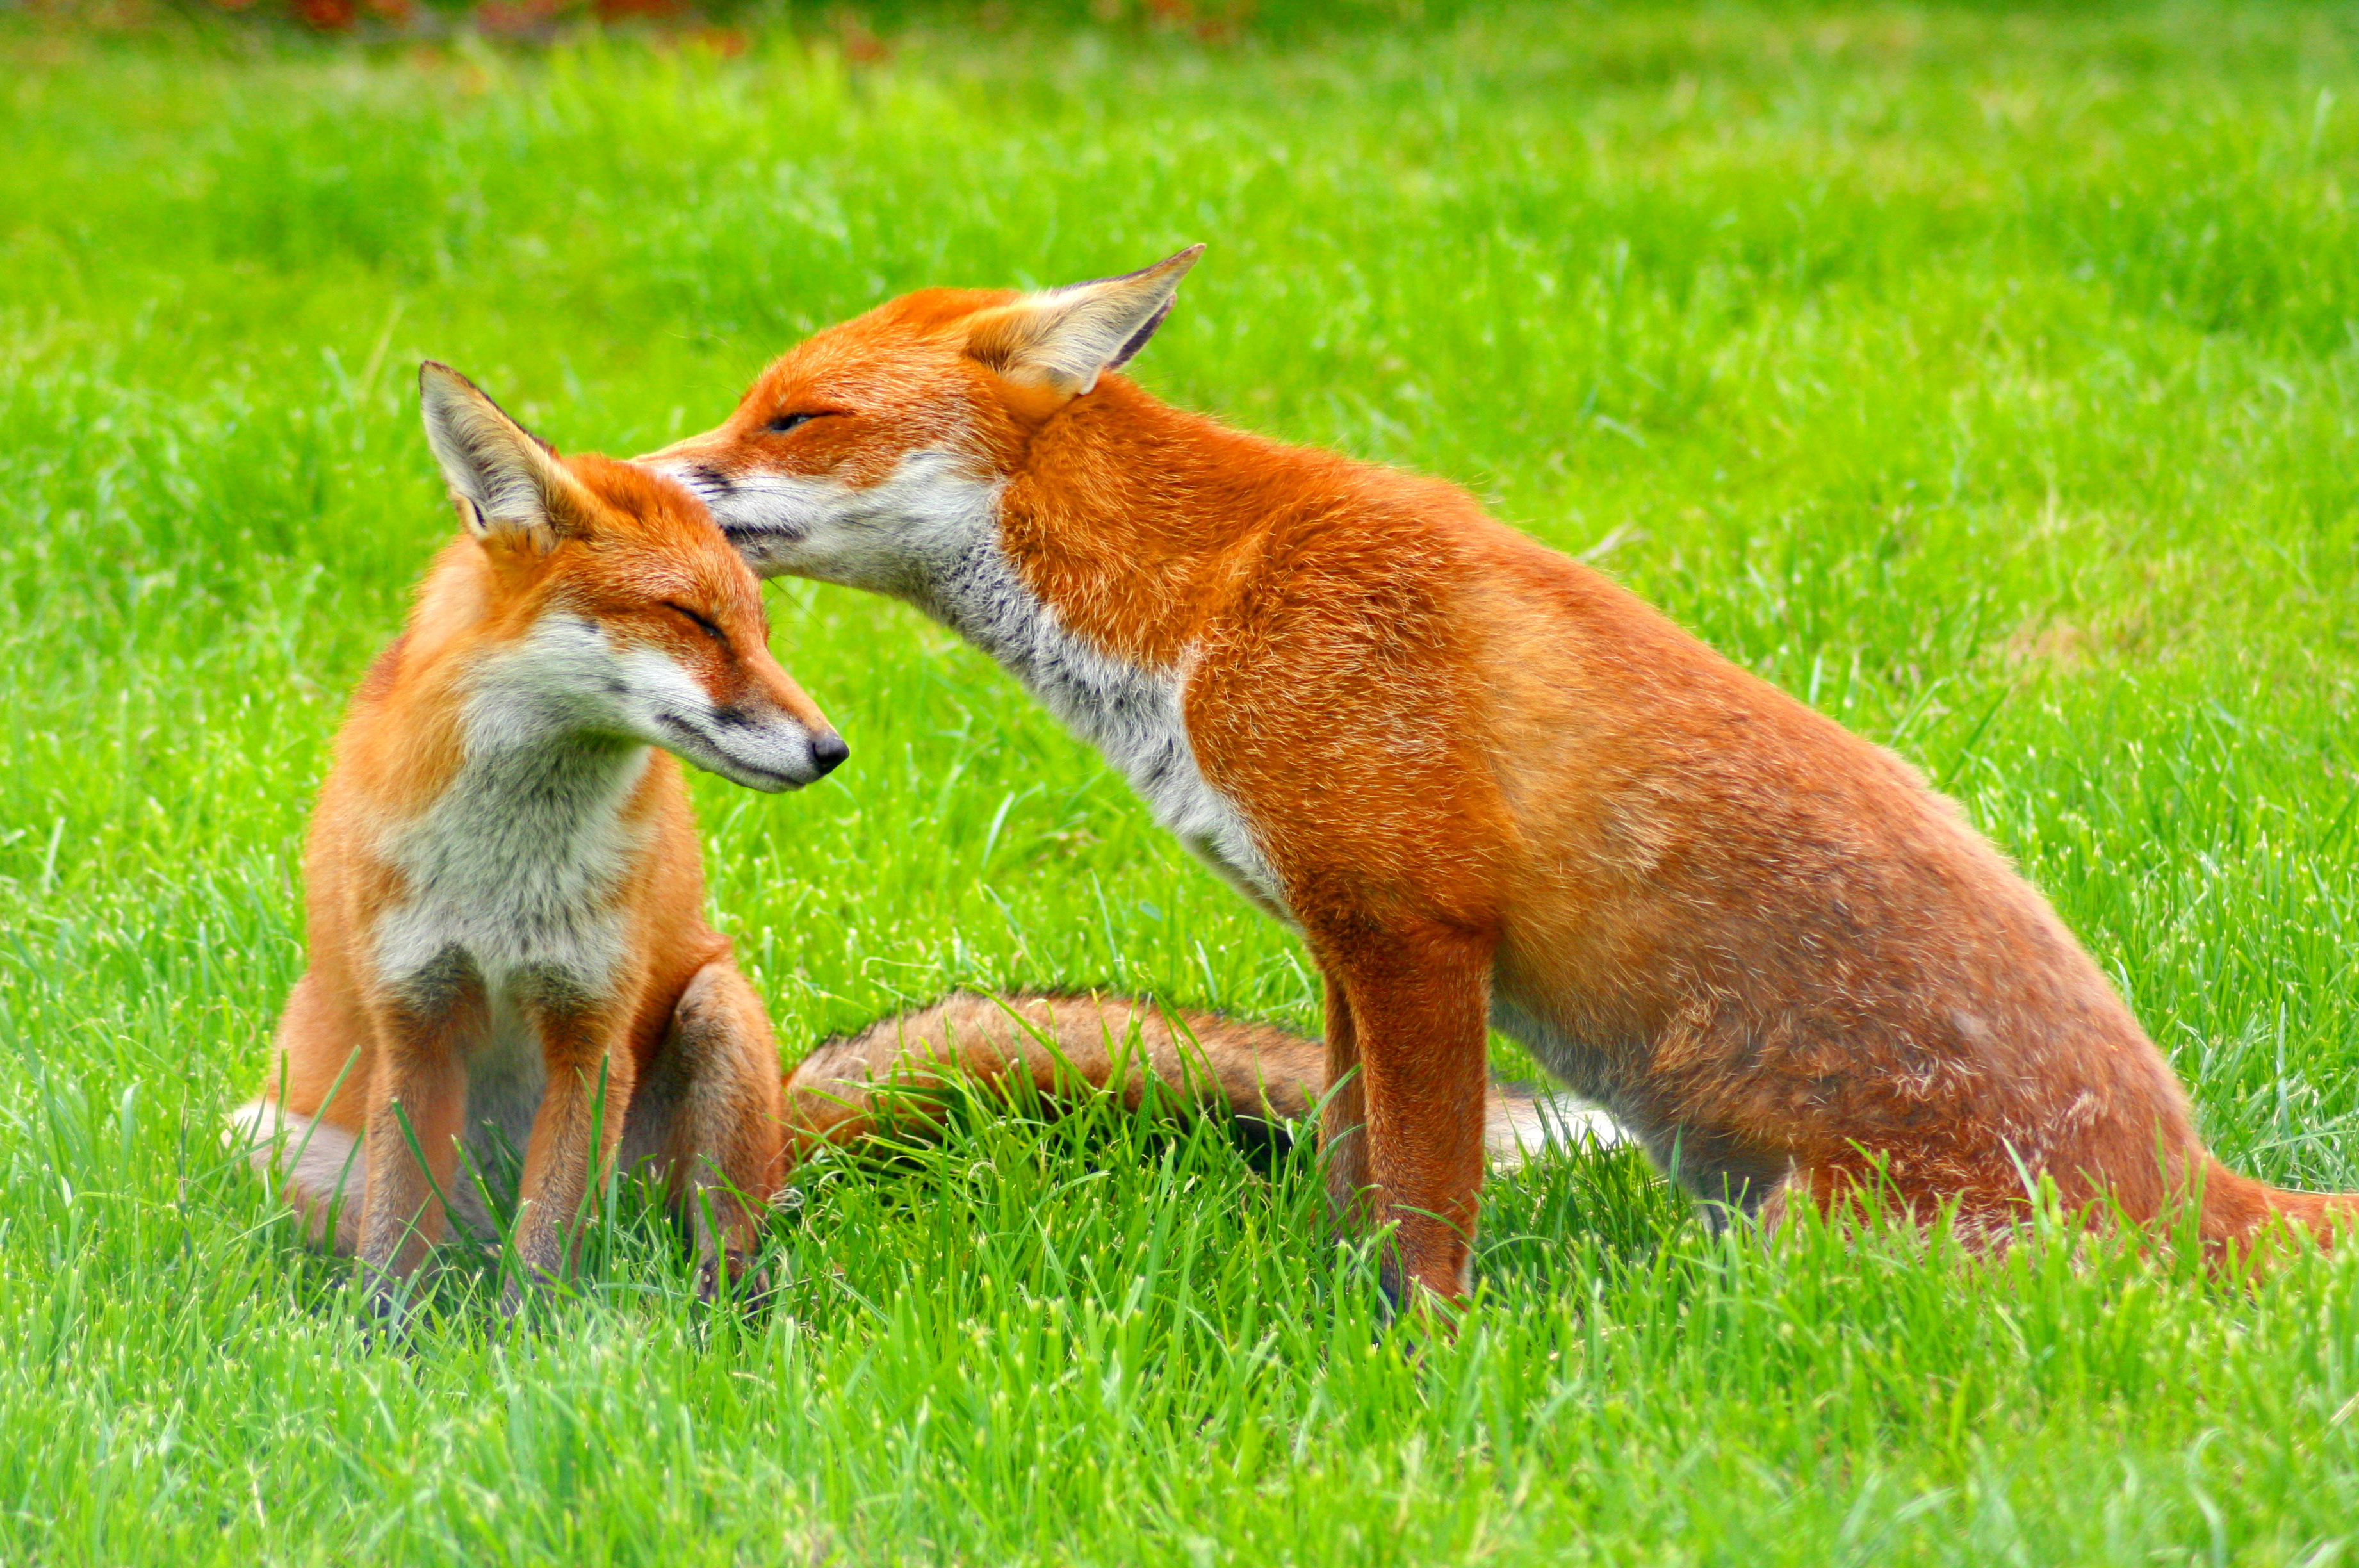 A pair of European red foxes (Vulpes vulpes) at the British Wildlife Centre, Surrey, England. Photo taken on Sunday August 17, 2008.